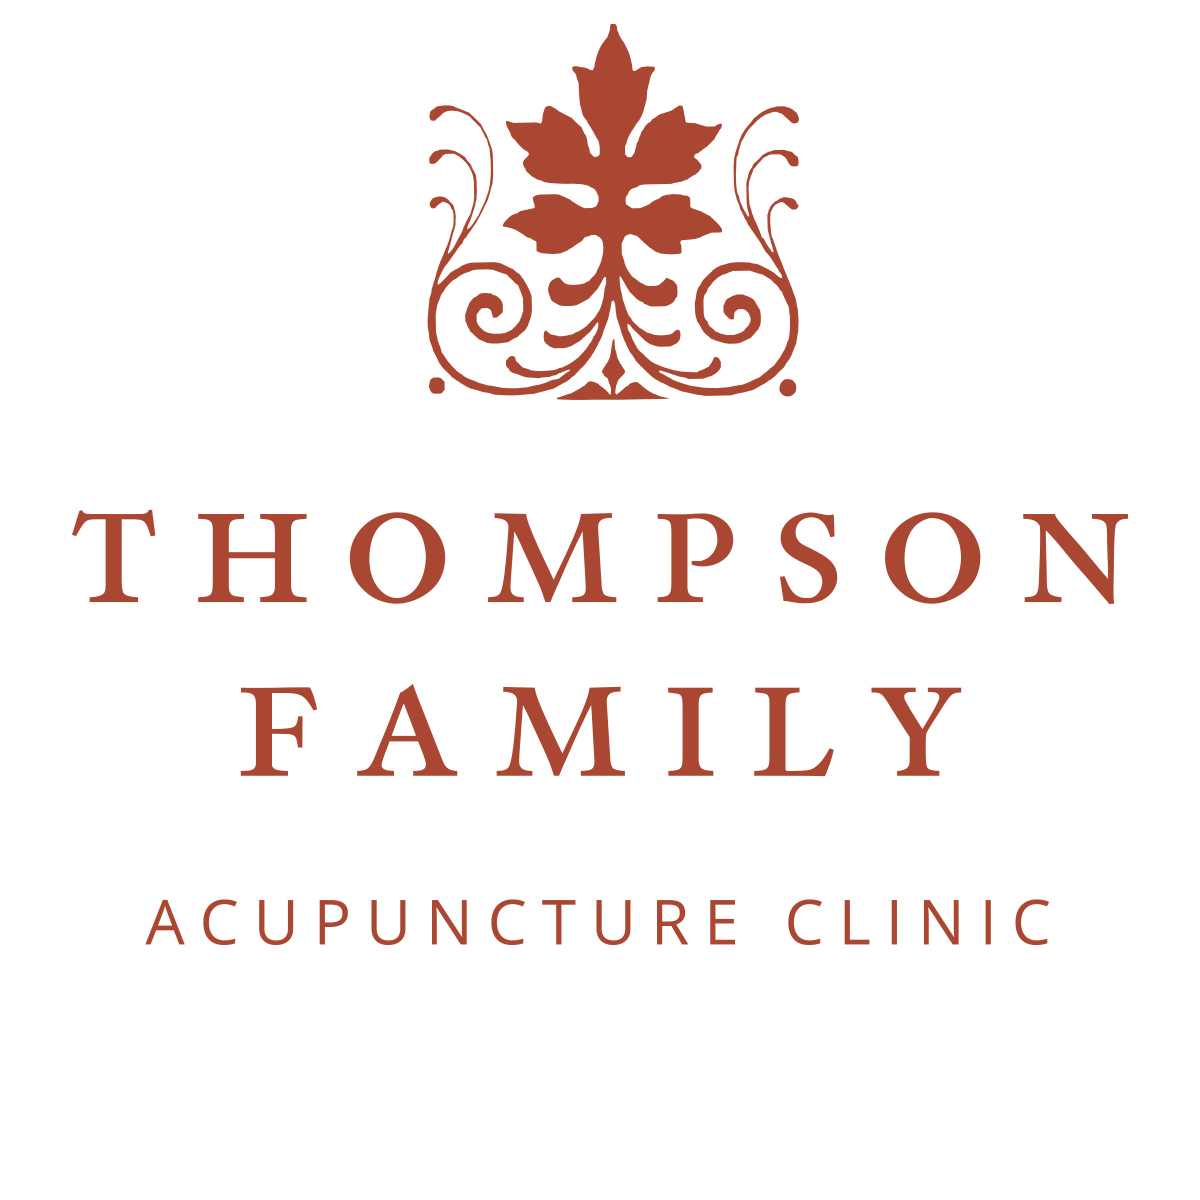 Thompson Family Acupuncture Clinic